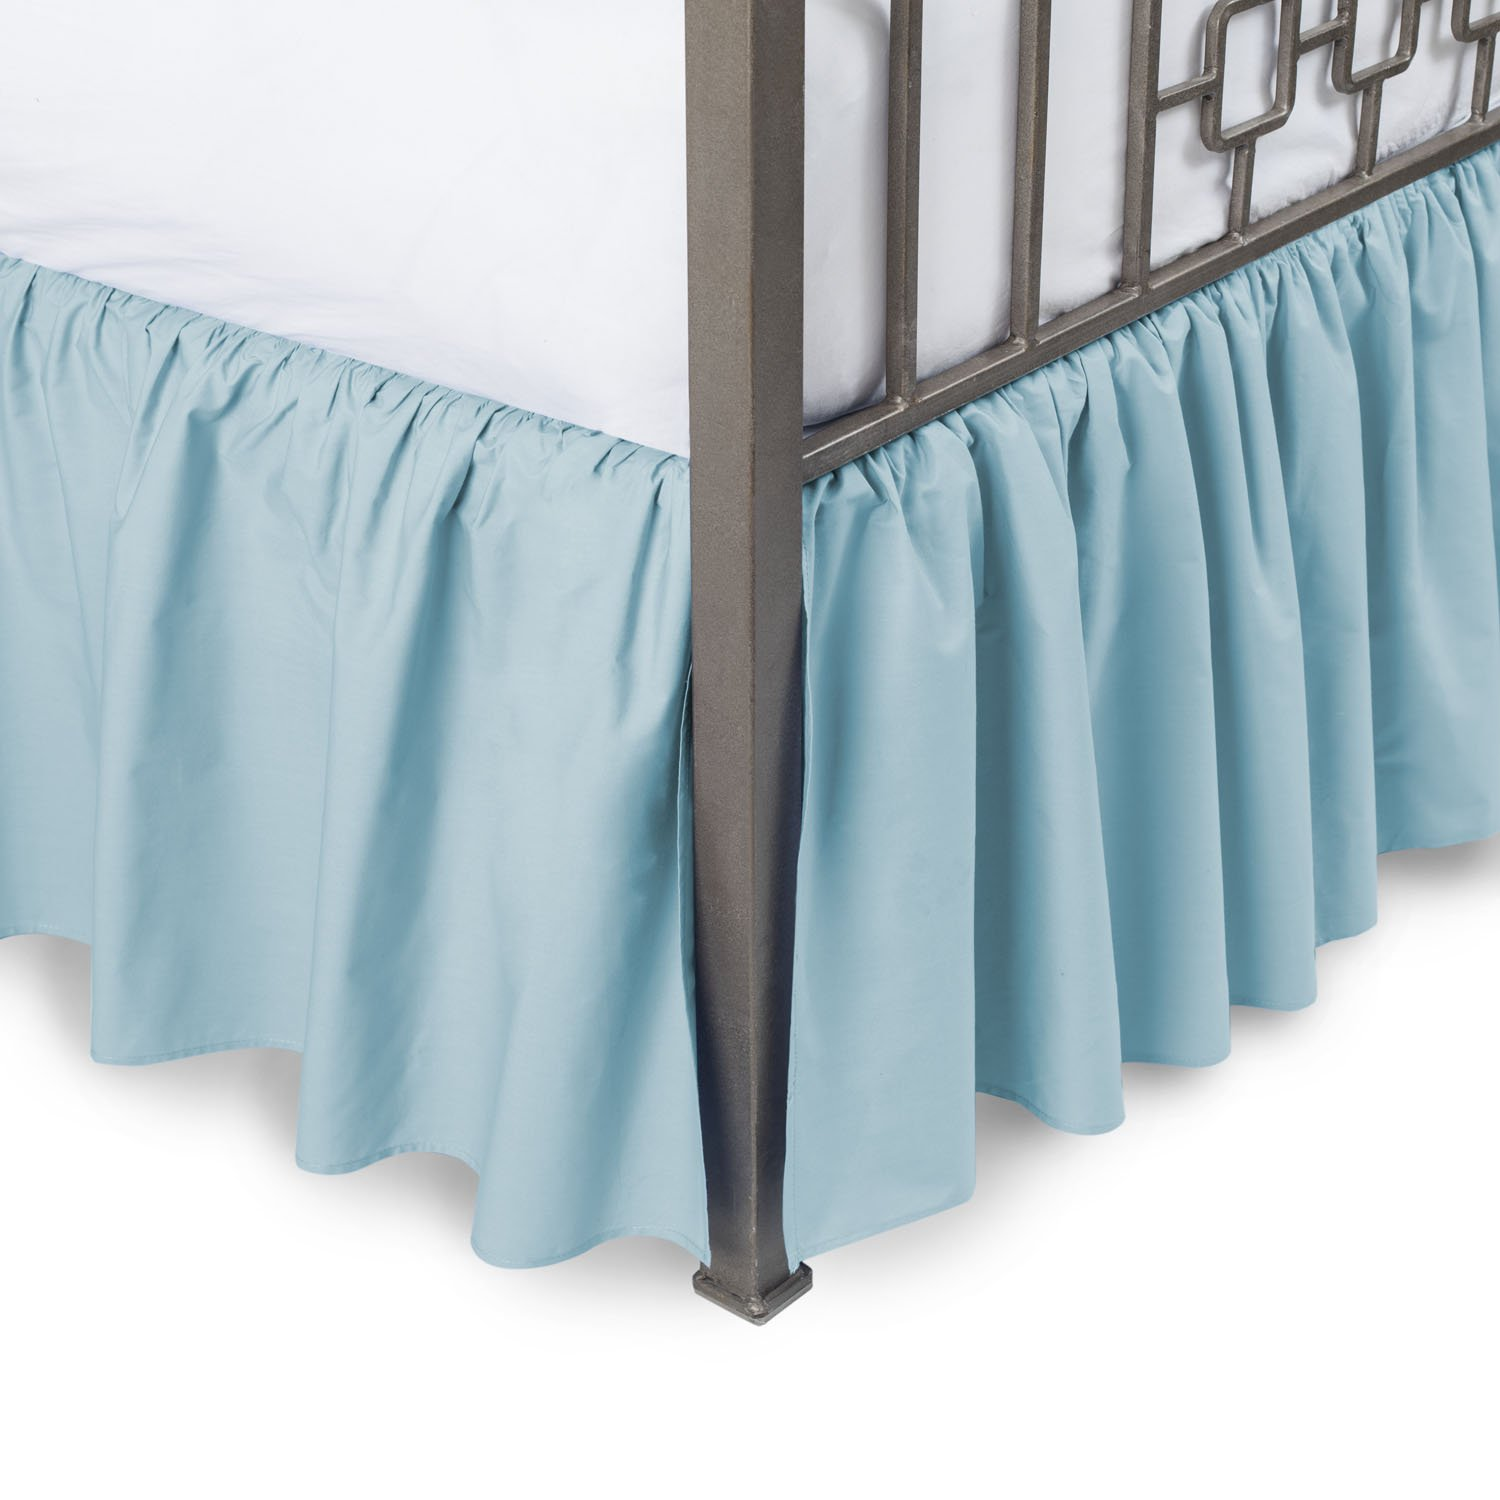 Harmony Lane Ruffled Bed Skirt with Split Corners - Queen, Porcelain Blue, 18 Inch Drop Bedskirt (Available in and 16 Colors)